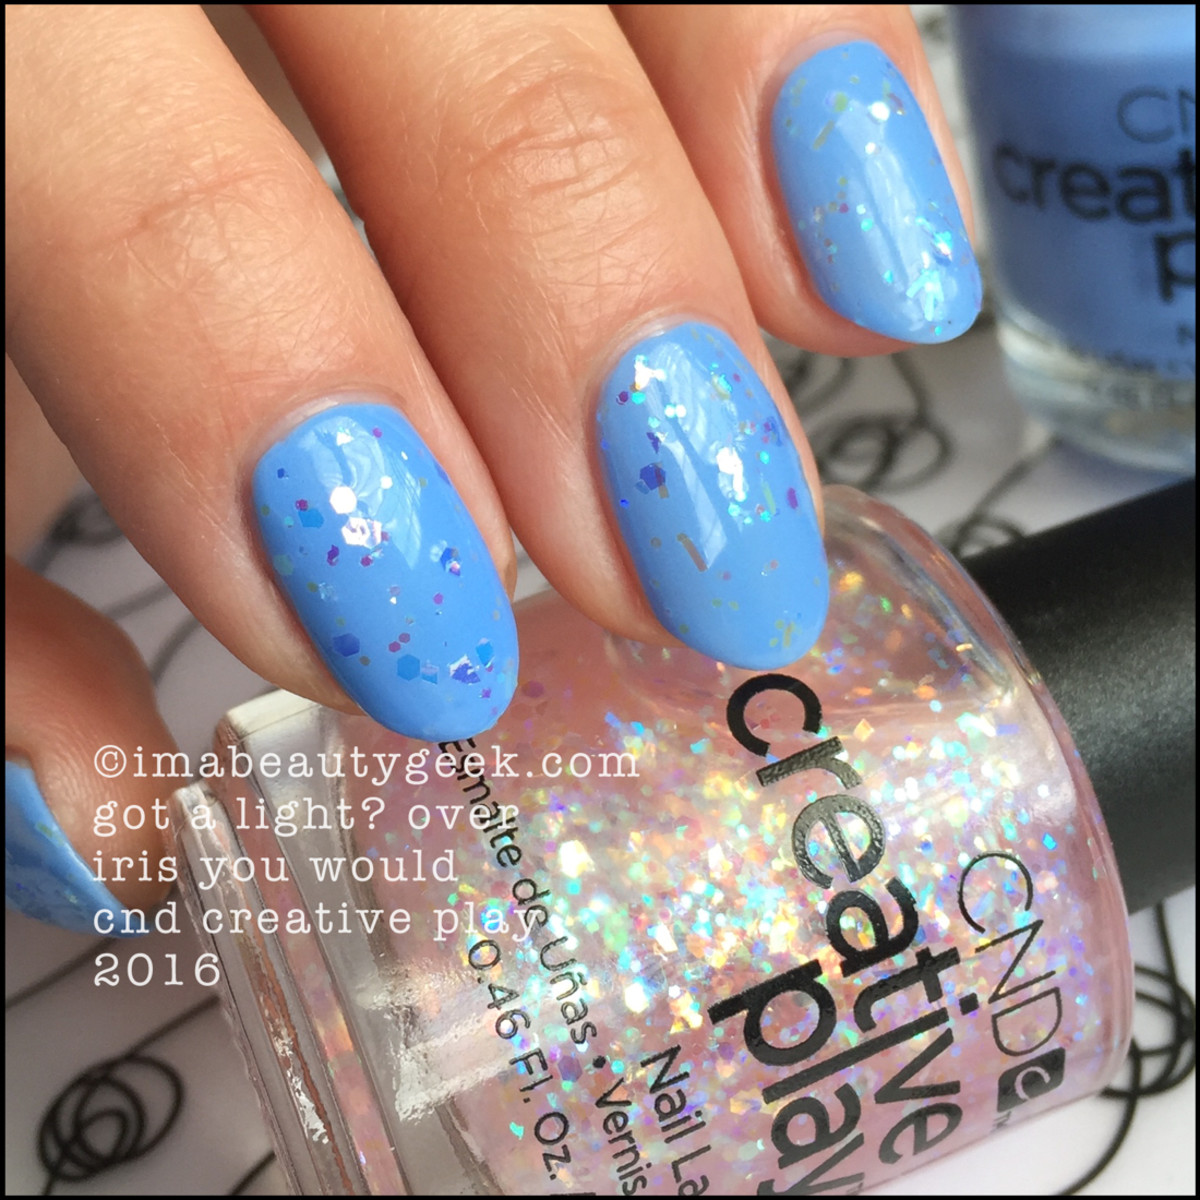 CND Creative Play Got a Light over Iris You Would_CND Creative Play Nail Polish Swatches